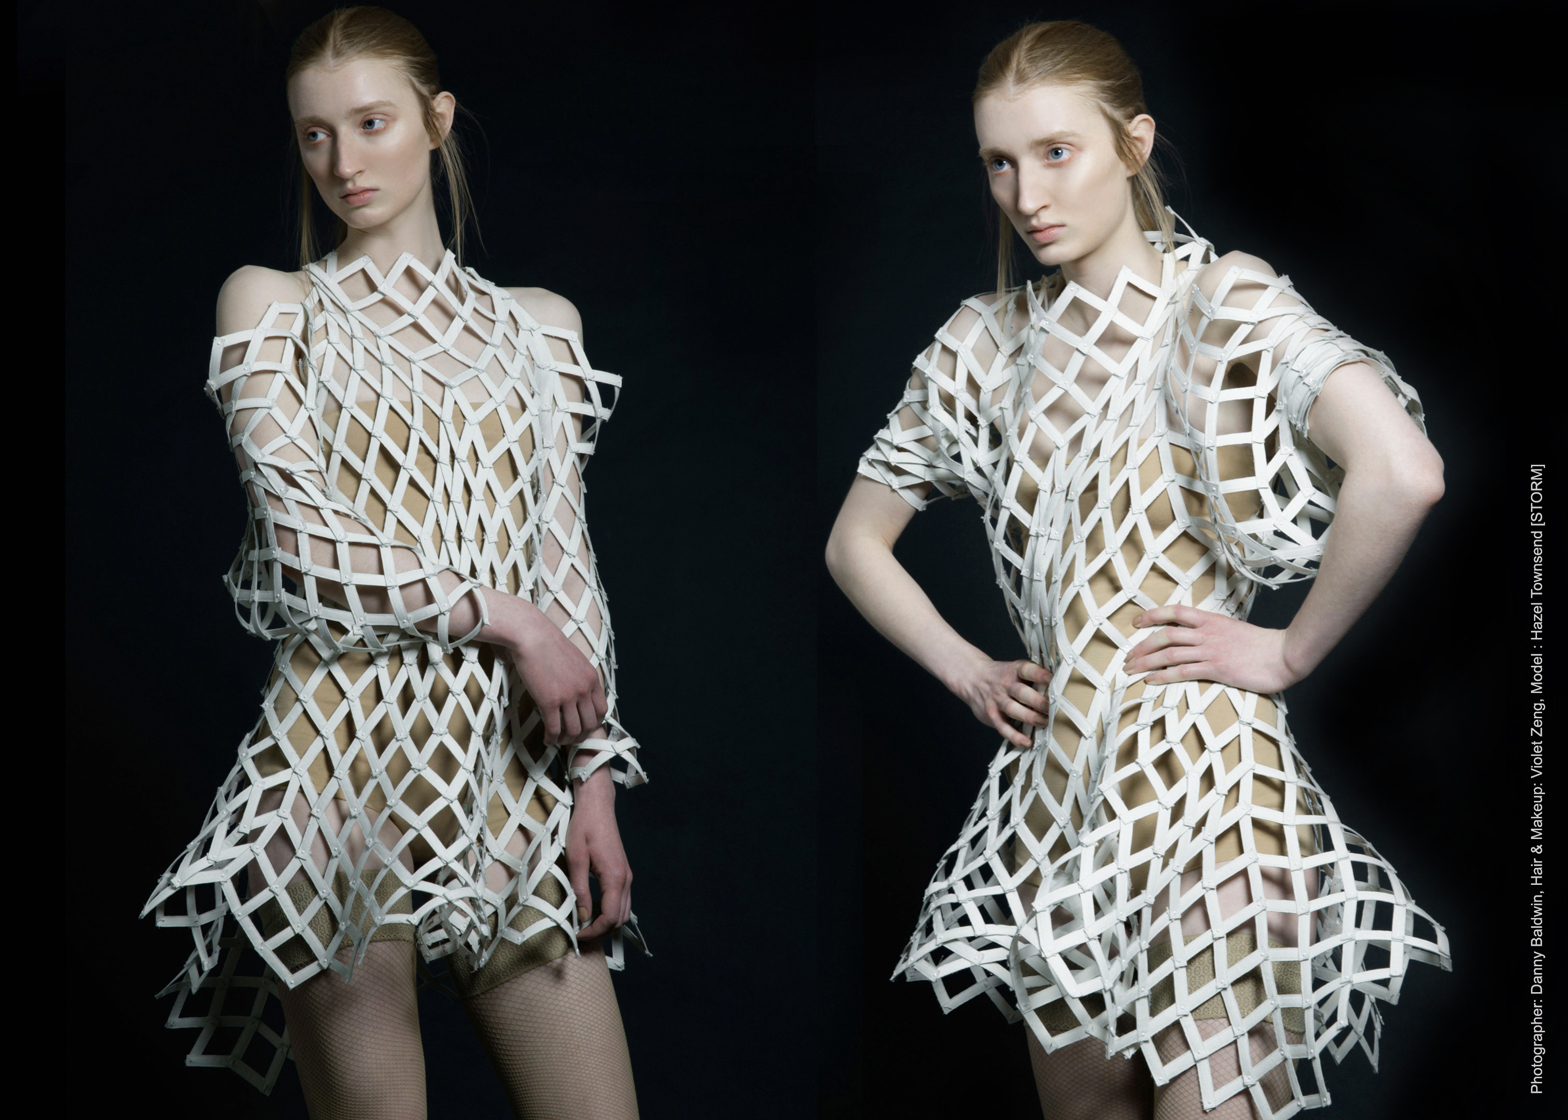 Shape Shifters garments by Angelene Laura Fenuta